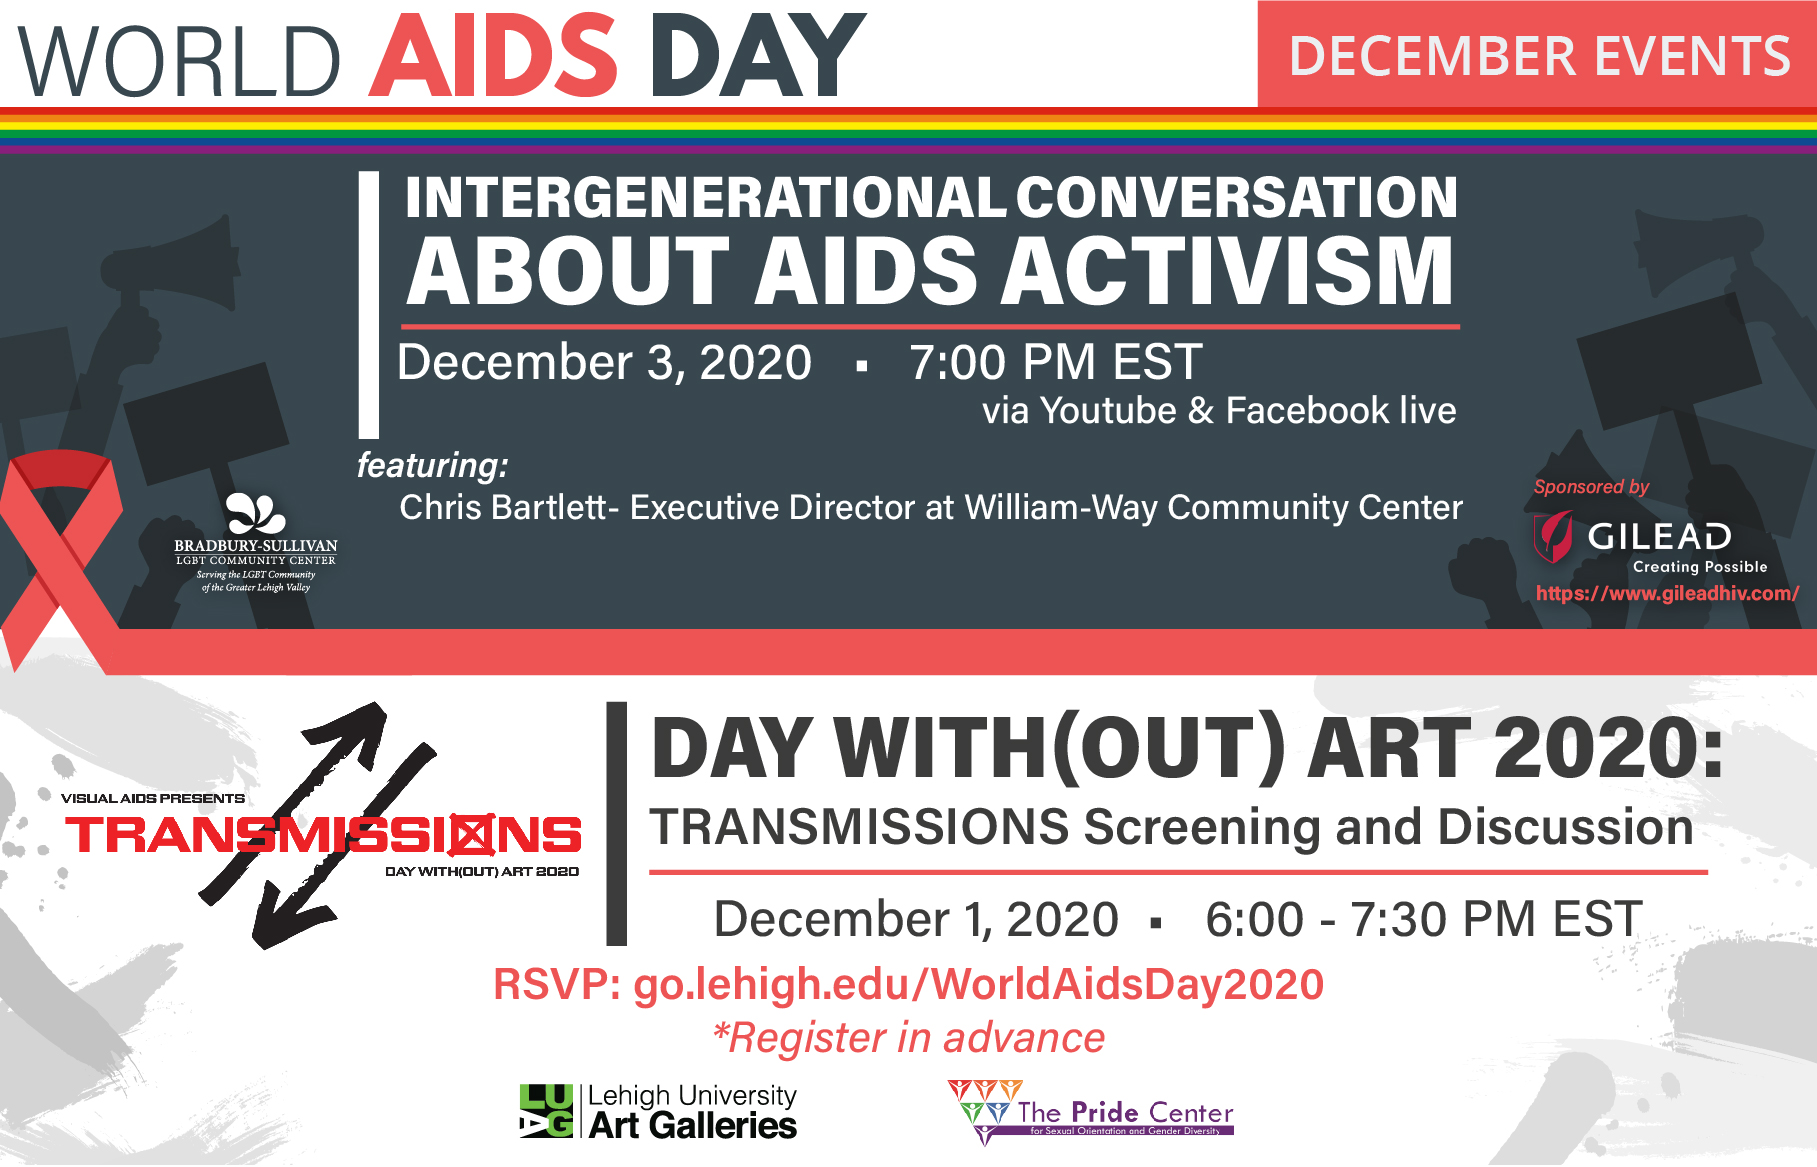 """Graphic title """"World AIDS Day: December Events"""" at top of page with a rainbow stripe below it. Beneath the stripe are two sections. The first, top section has information in white text on a gray background about the Intergenerational Conversation About Aids Activism event. The second, bottom section has information in black text on a white background on the Day With(out) Art 2020 event. The sections are separated by a red ribbon and red stripe."""